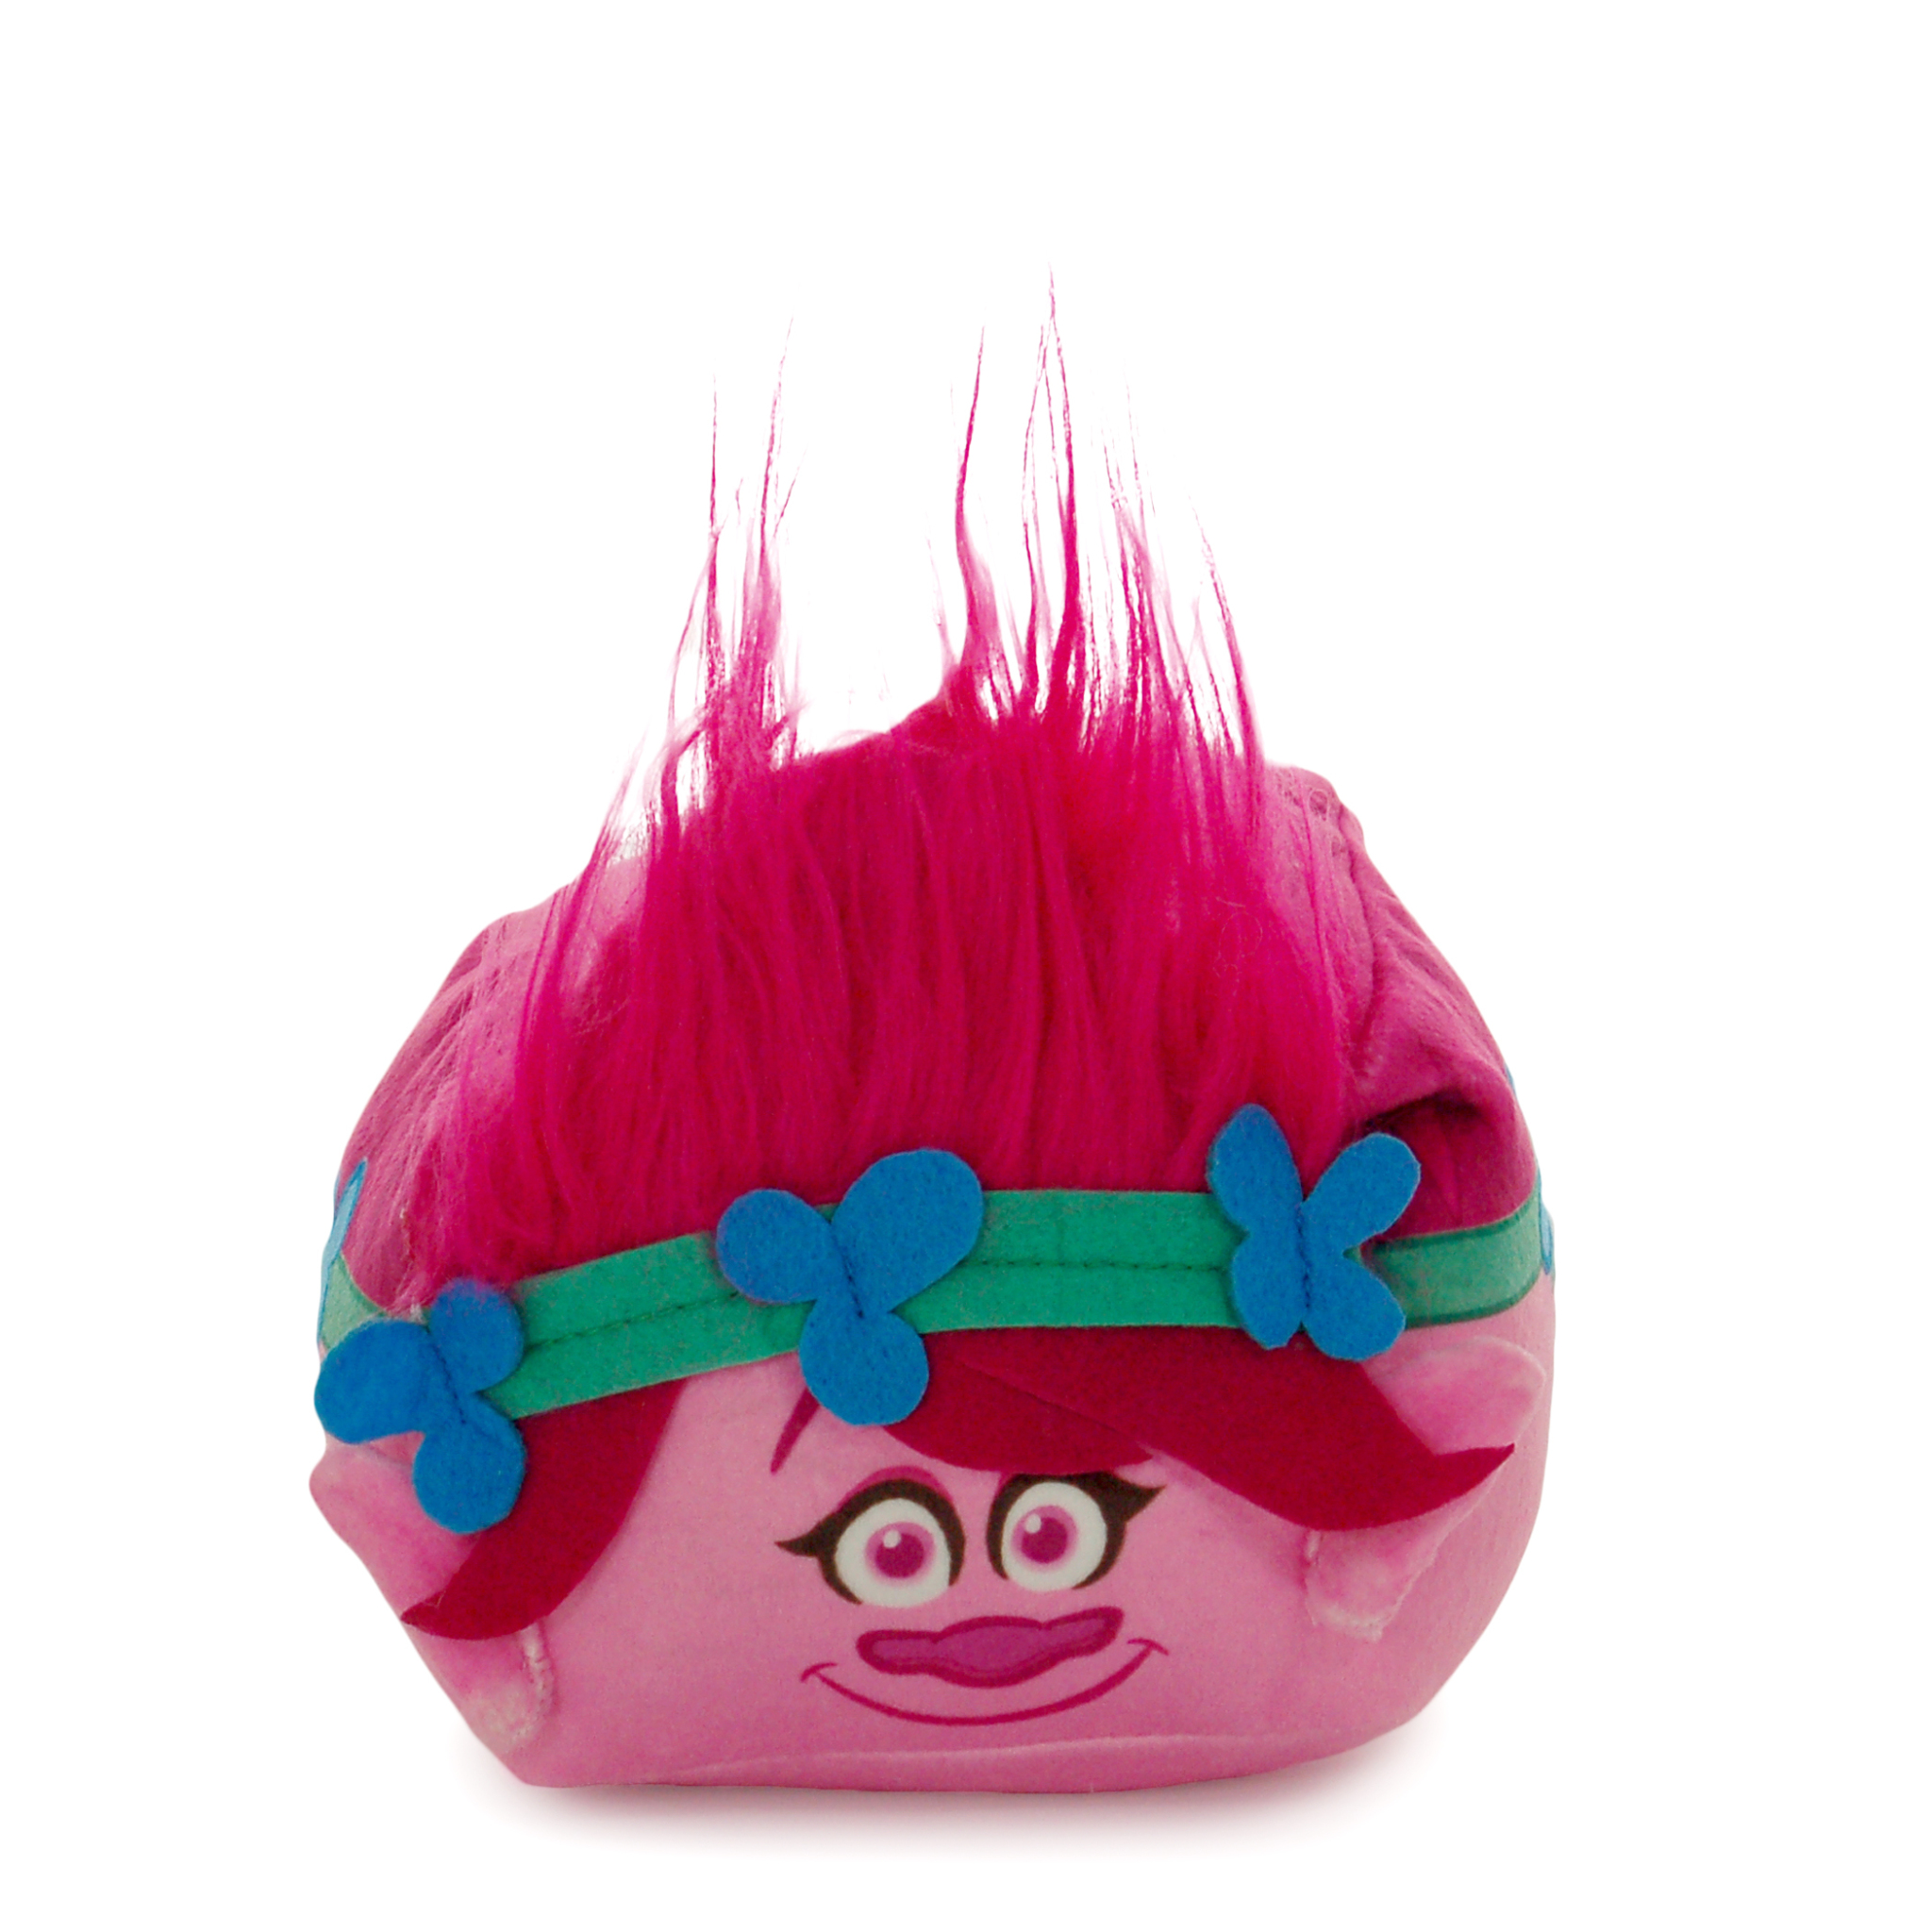 Trolls Poppy 3D Ultra Stretch Mini Cloud Cube Travel Pillow, 1 Each